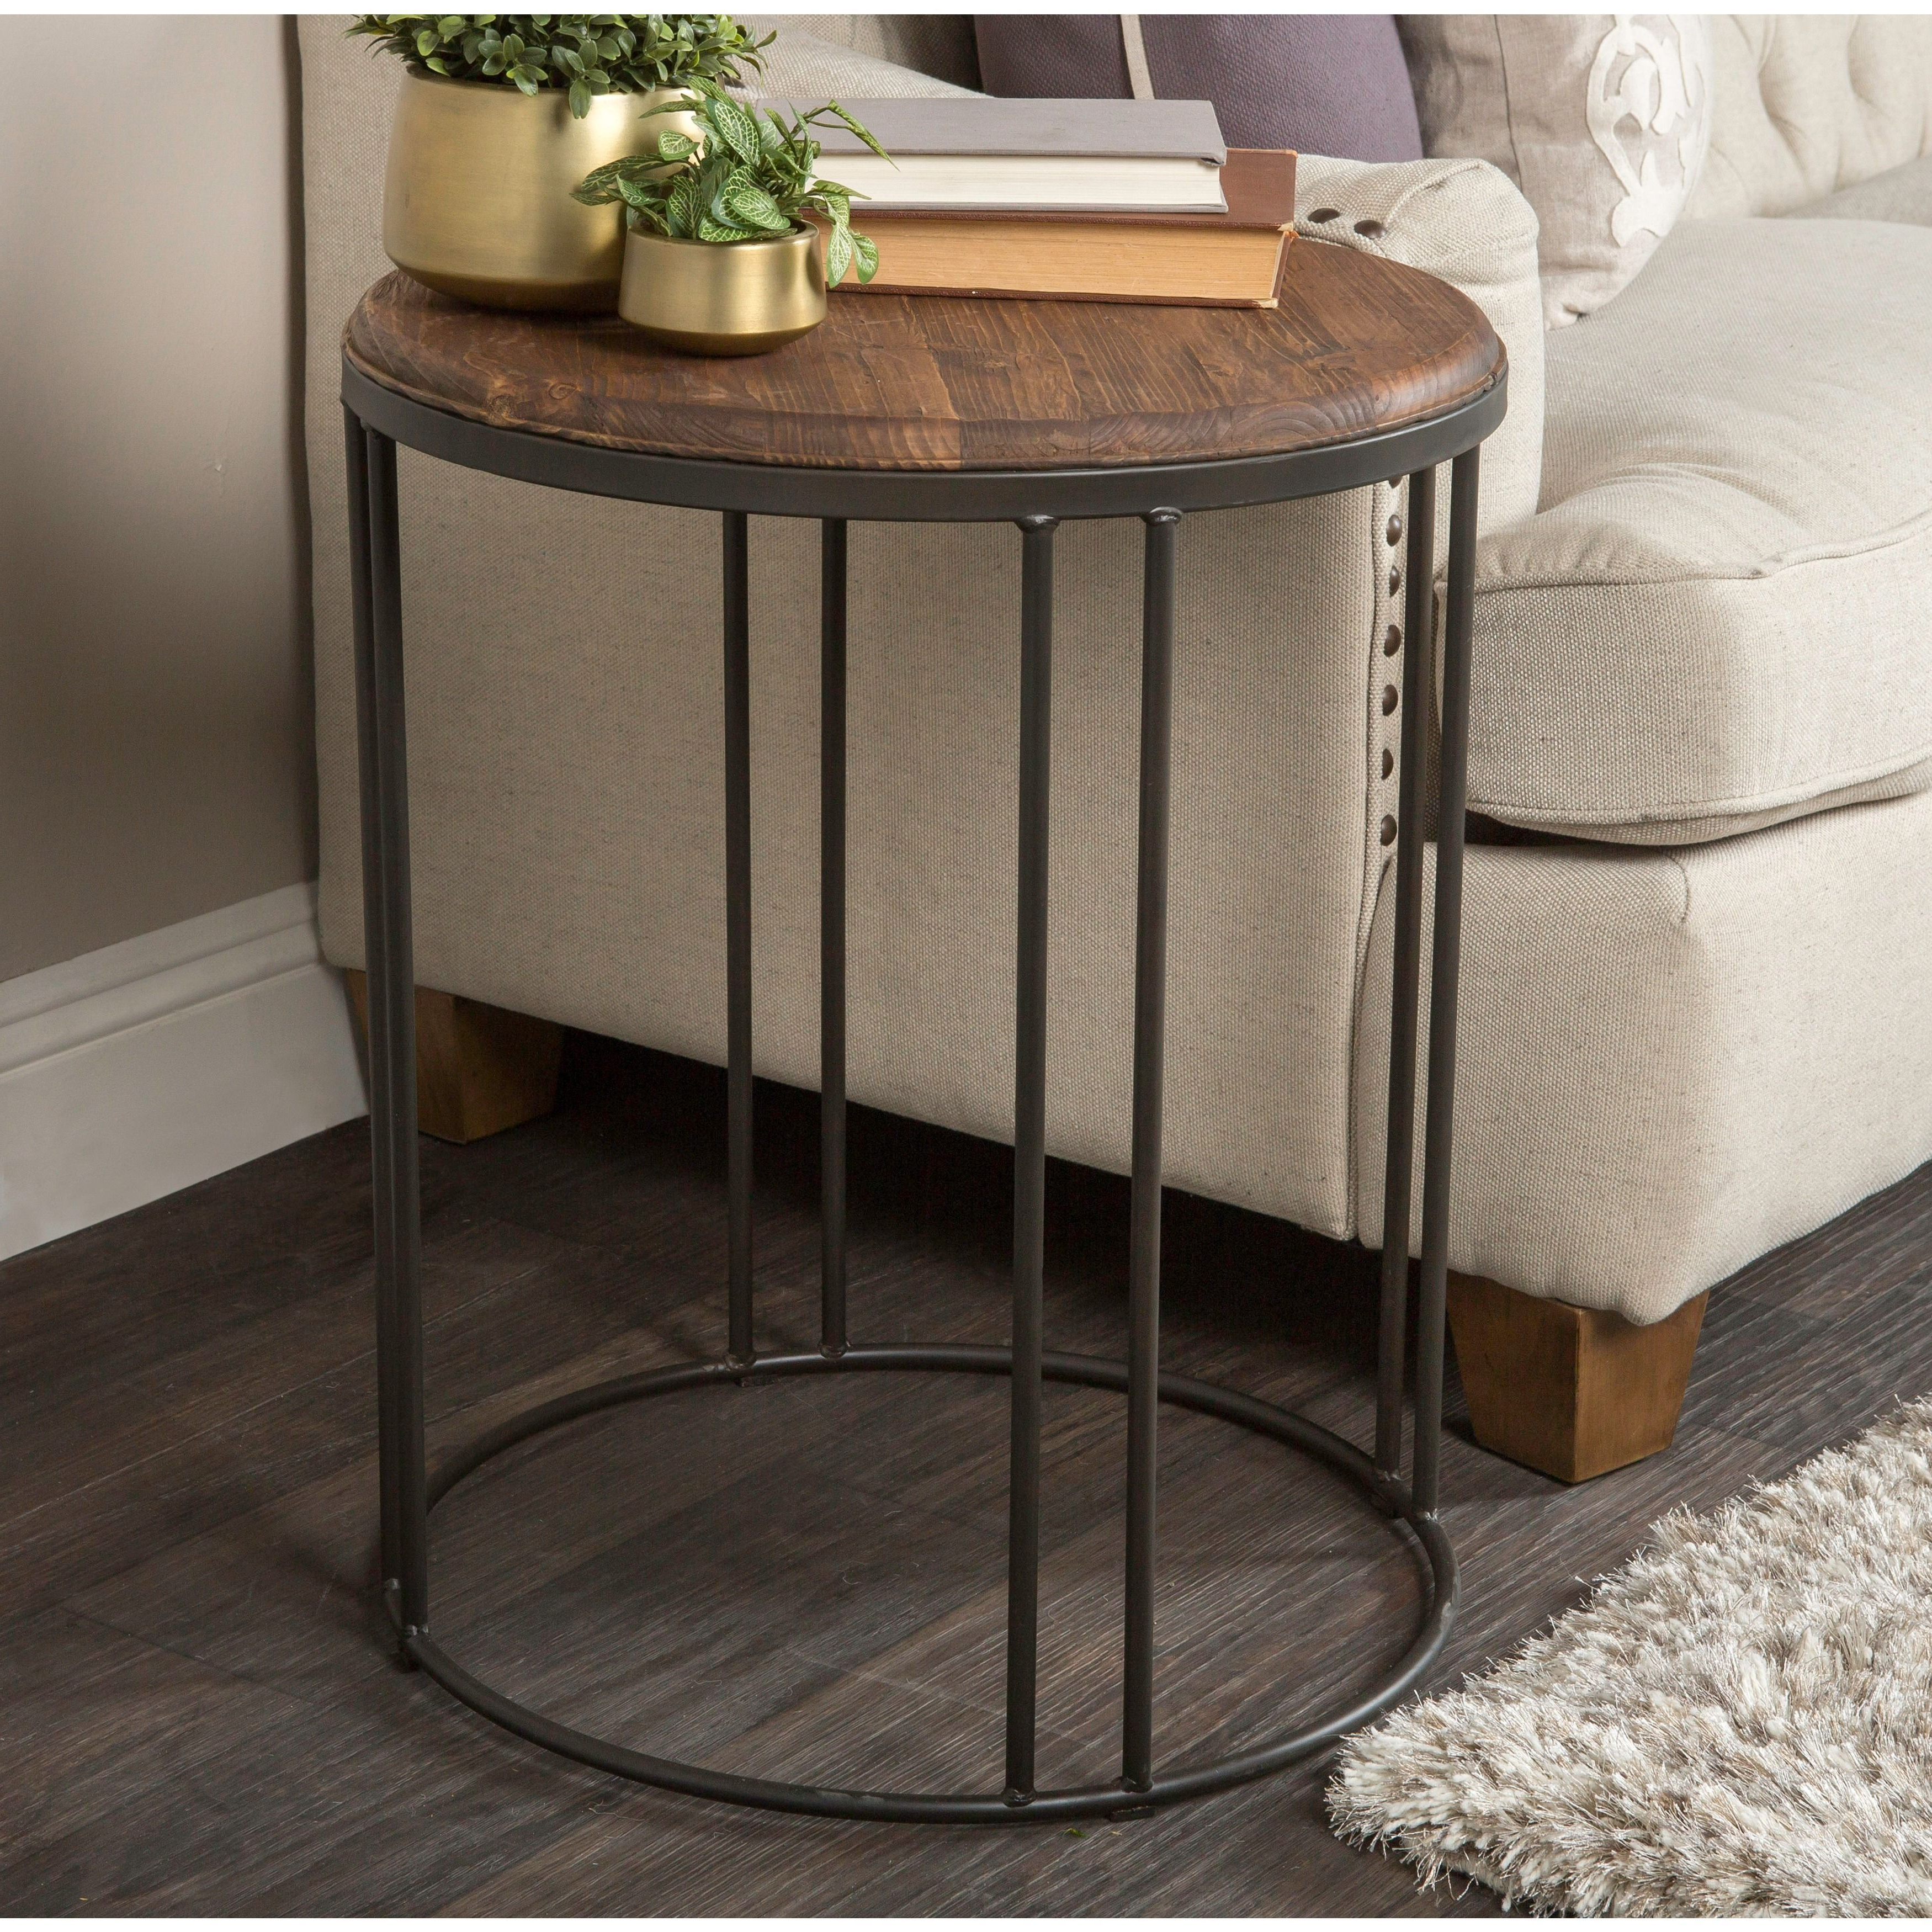 2019 Reclaimed Pine & Iron Coffee Tables For This Reclaimed Pine Wood And Iron Table Provides A Simple And (View 2 of 20)